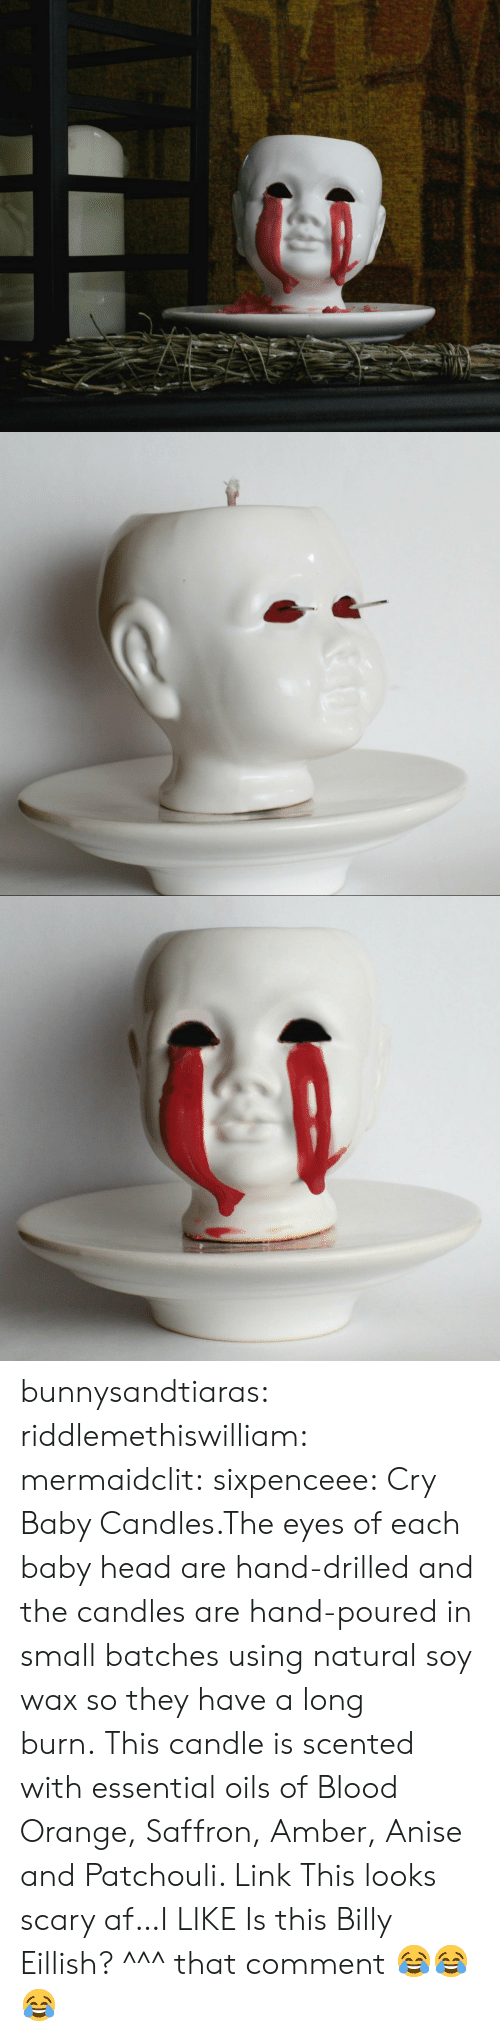 Af, Click, and Creepy: bunnysandtiaras:  riddlemethiswilliam: mermaidclit:  sixpenceee:  Cry Baby Candles.The eyes of each baby head are hand-drilled and the candles are hand-poured in small batches using natural soy wax so they have a long burn. This candle is scented with essential oils of Blood Orange, Saffron, Amber, Anise and Patchouli. Link  This looks scary af…I LIKE  Is this Billy Eillish?   ^^^ that comment 😂😂😂